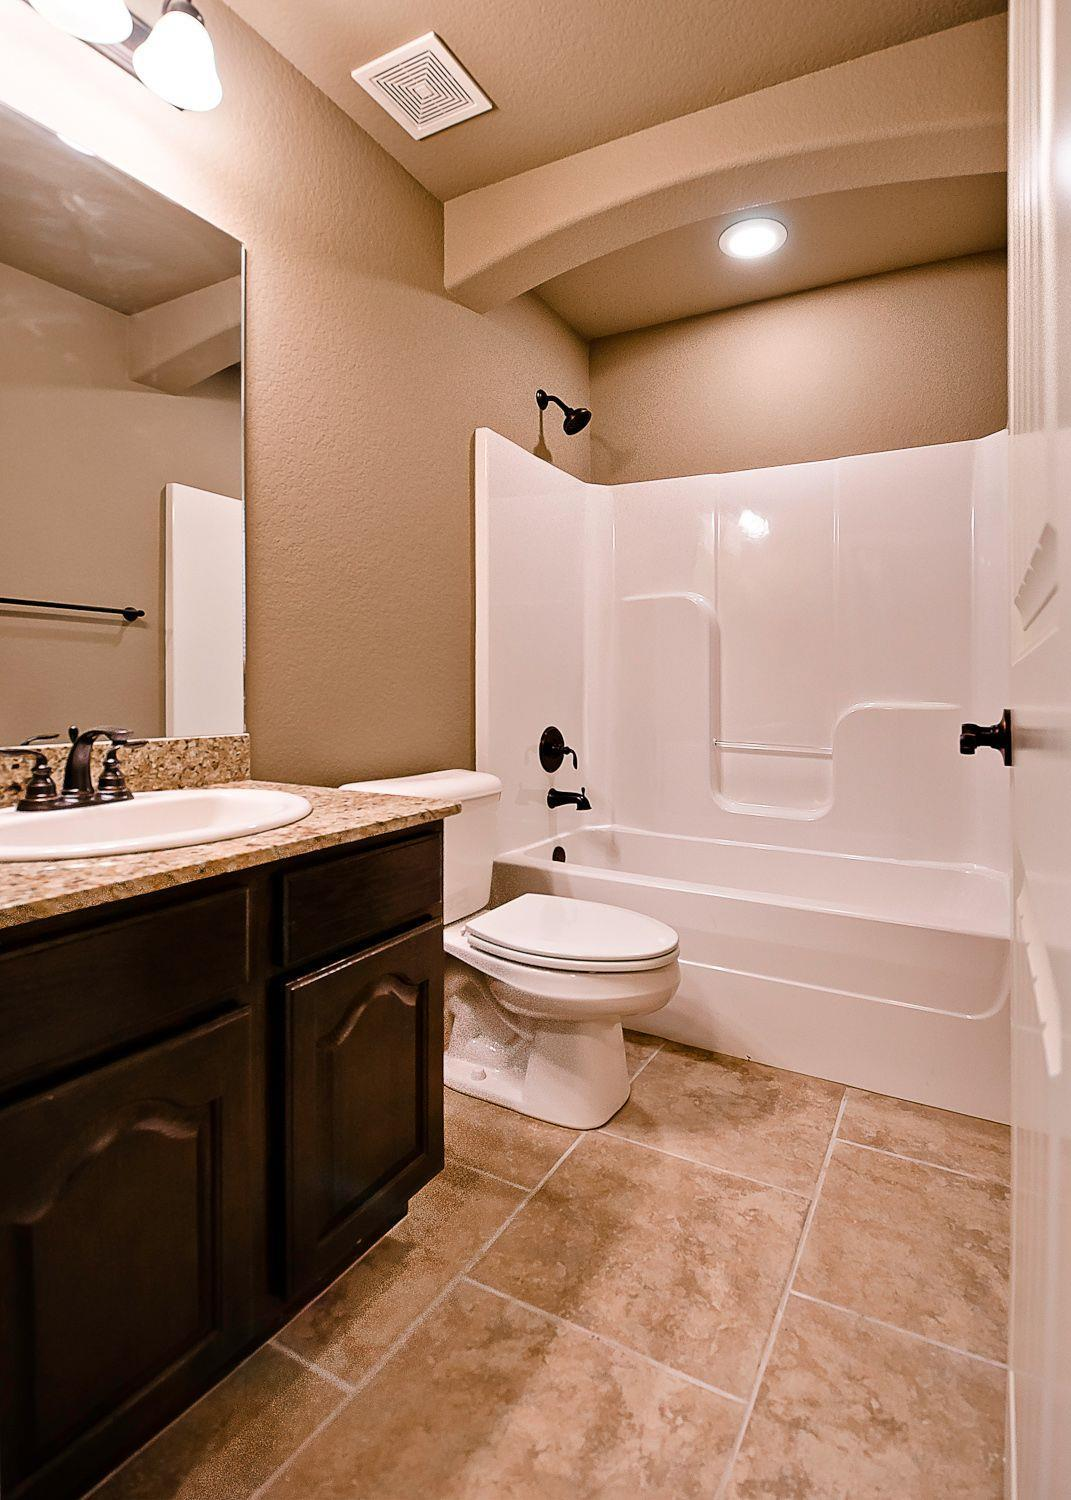 Bathroom featured in the Eureka 1536 By Riverwood Homes - Arkansas in Fayetteville, AR